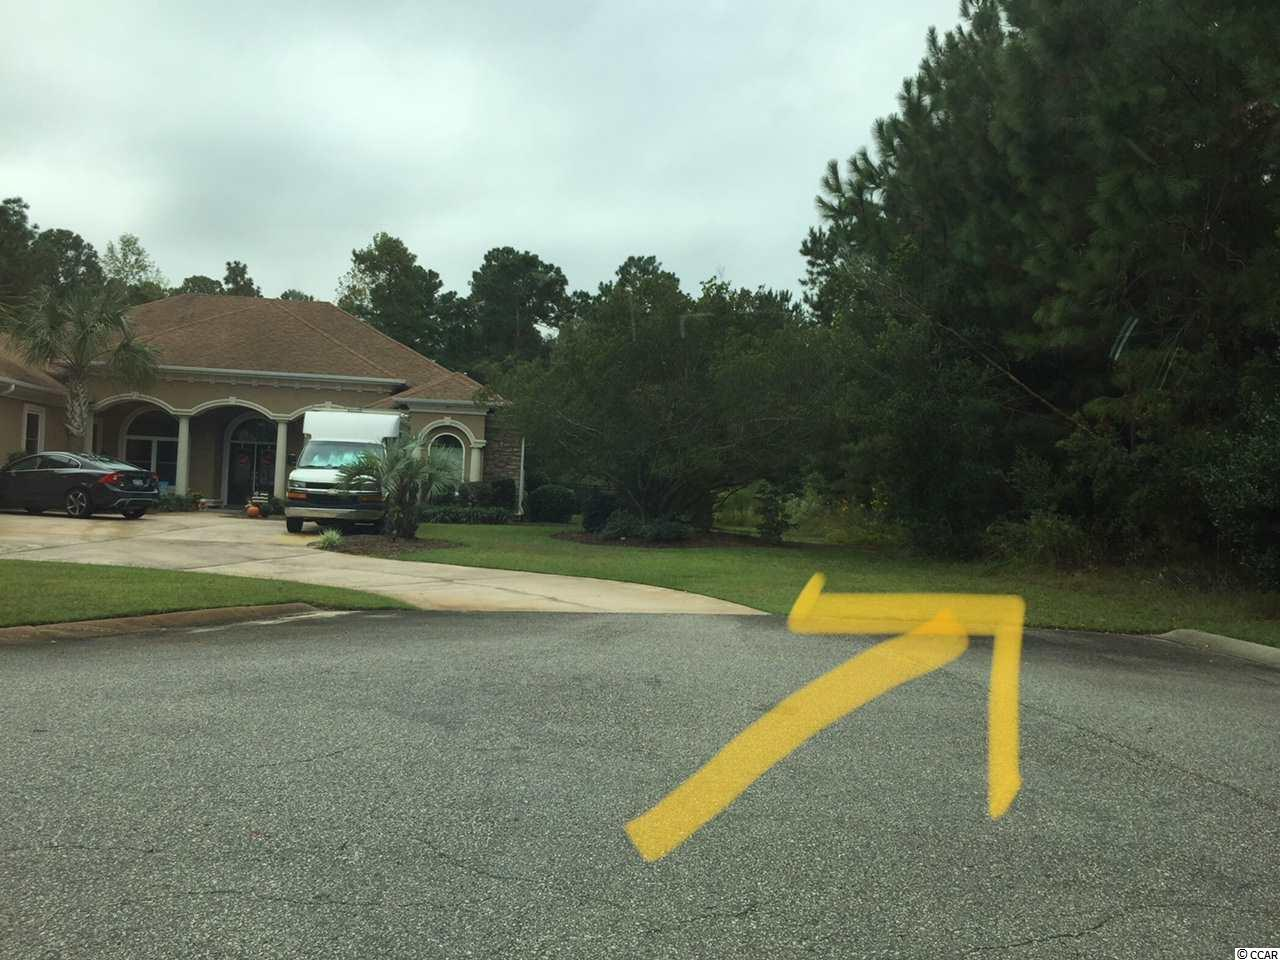 Very private secluded flat lot in gold course community. Lowest priced in community.